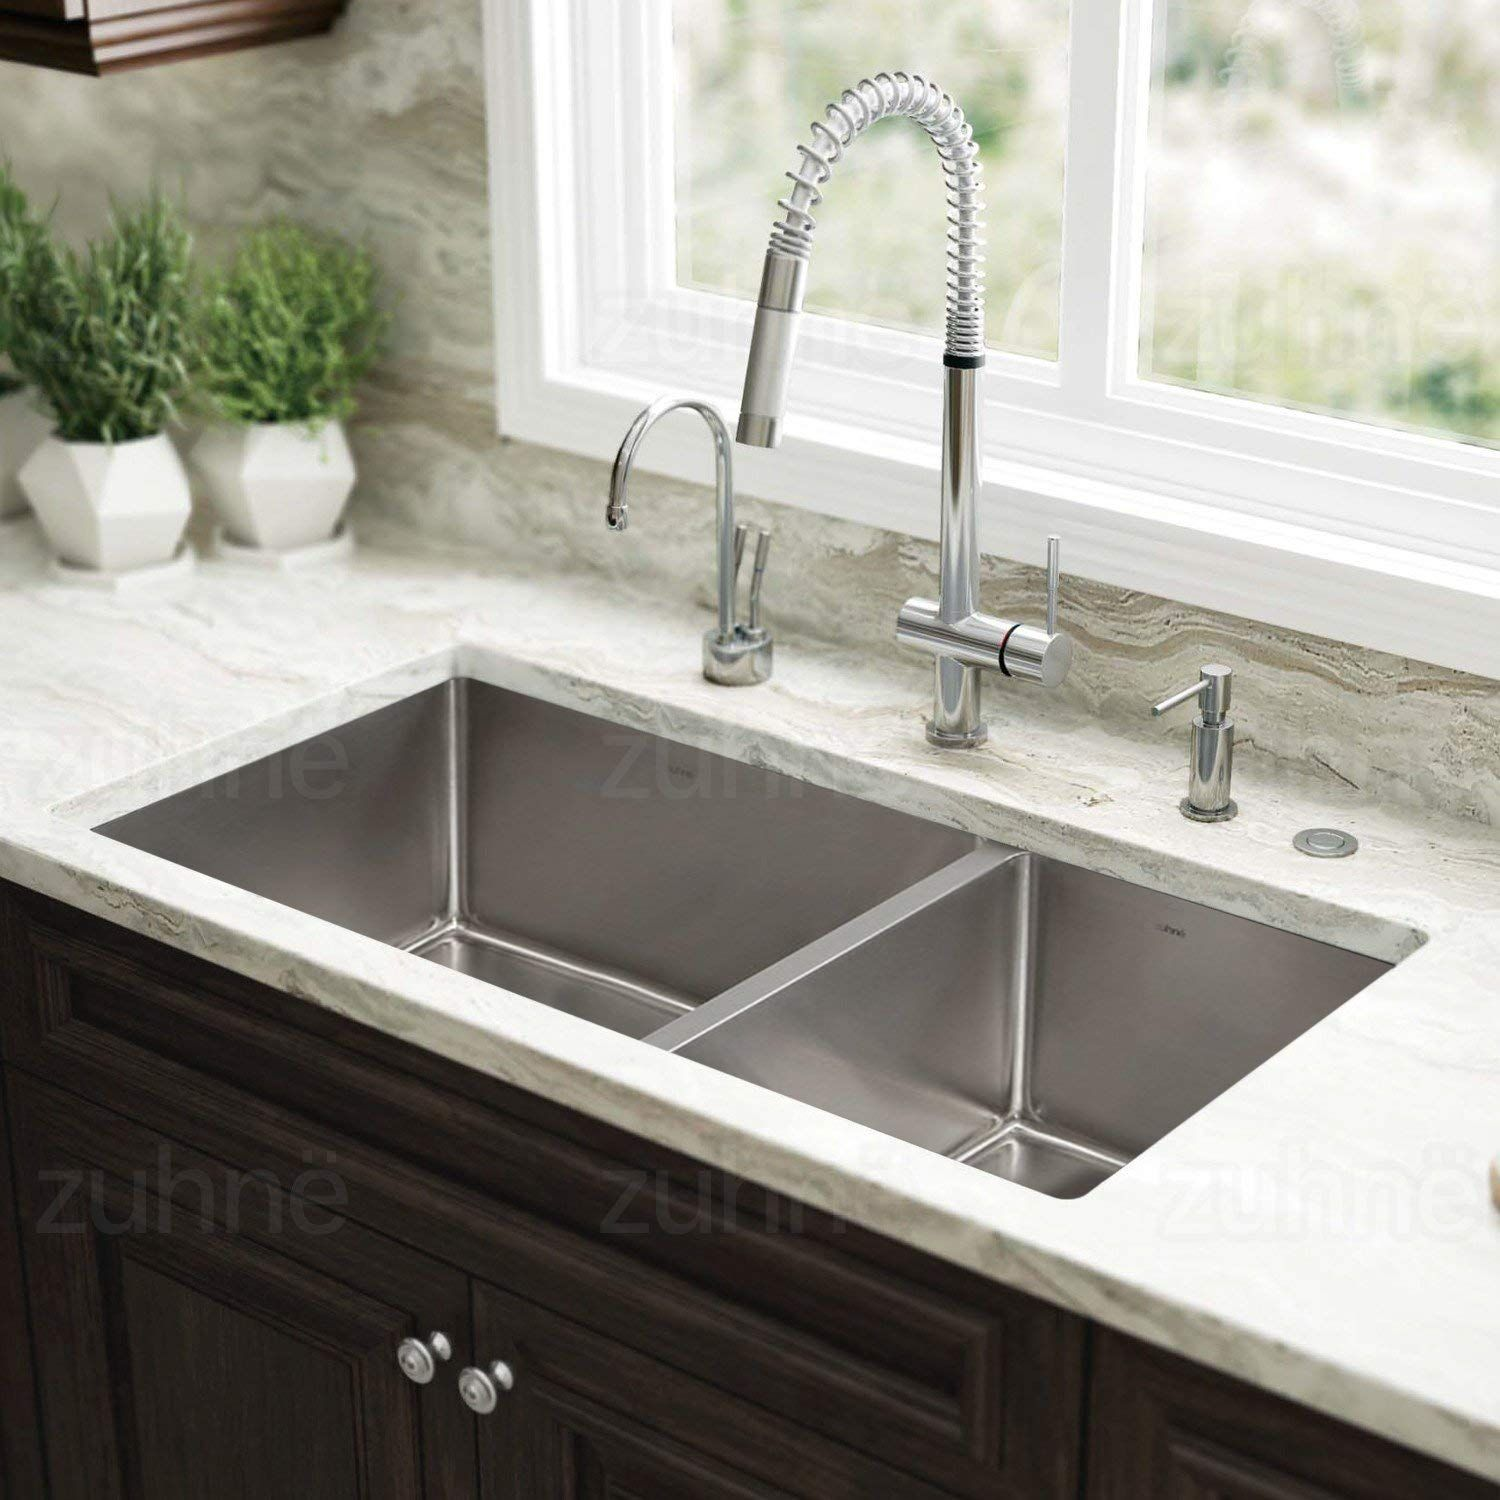 uncle paul best stainless steel sinks and his top choices kitchen undermount sink white shaker cabinets whirlaway garbage disposal apron front ikea reglaze free standing storage #whiteshakercabinets